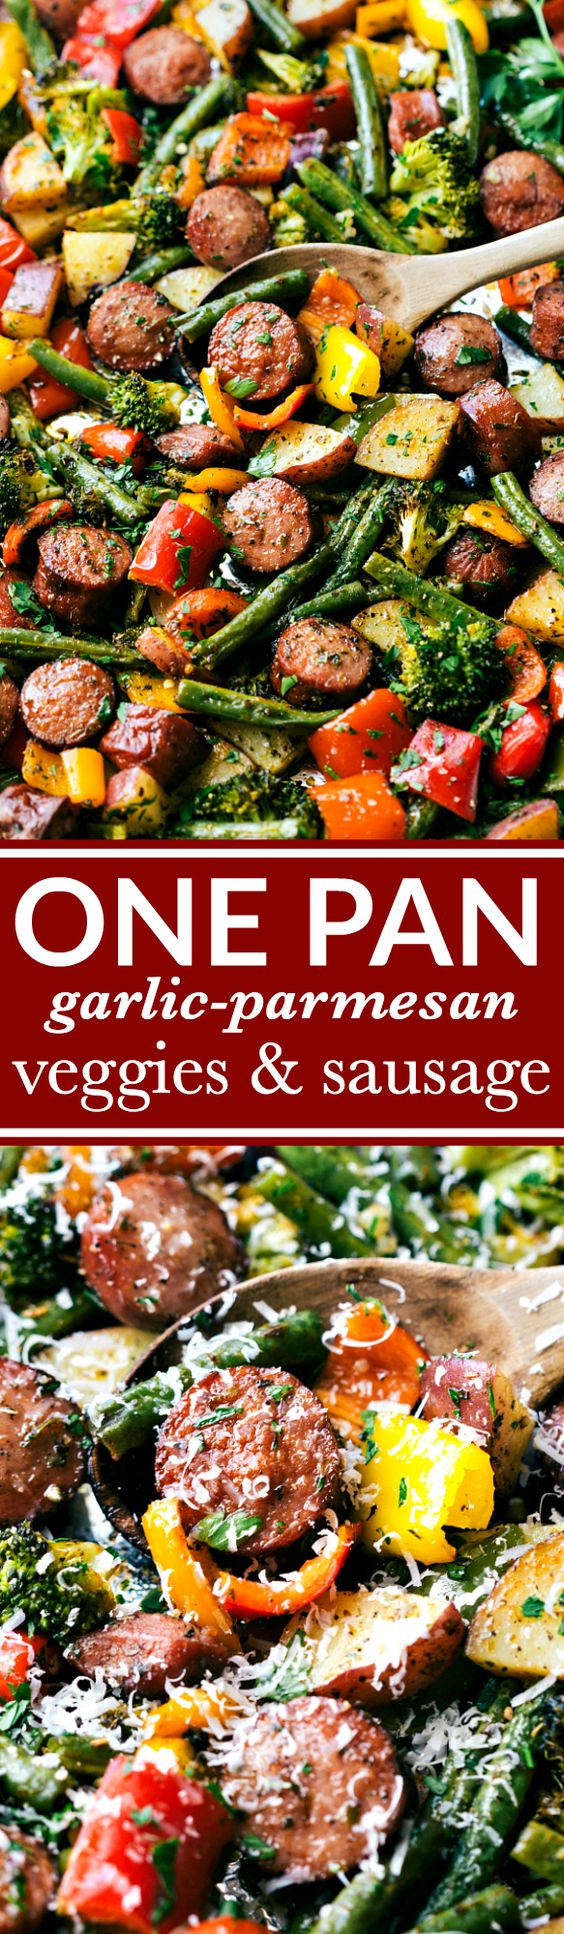 One Sheet Pan Healthy Sausage and Veggies Recipe via Chelsea's Messy Apron - Healthy garlic parmesan roasted veggies with sausage and herbs all made and cooked on one pan. 10 minutes prep, easy clean-up! GREAT MEAL PREP IDEA. #sheetpansuppers #sheetpanrecipes #sheetpandinners #onepanmeals #healthyrecipes #mealprep #easyrecipes #healthydinners #healthysuppers #healthylunches #simplefamilymeals #simplefamilyrecipes #simplerecipes